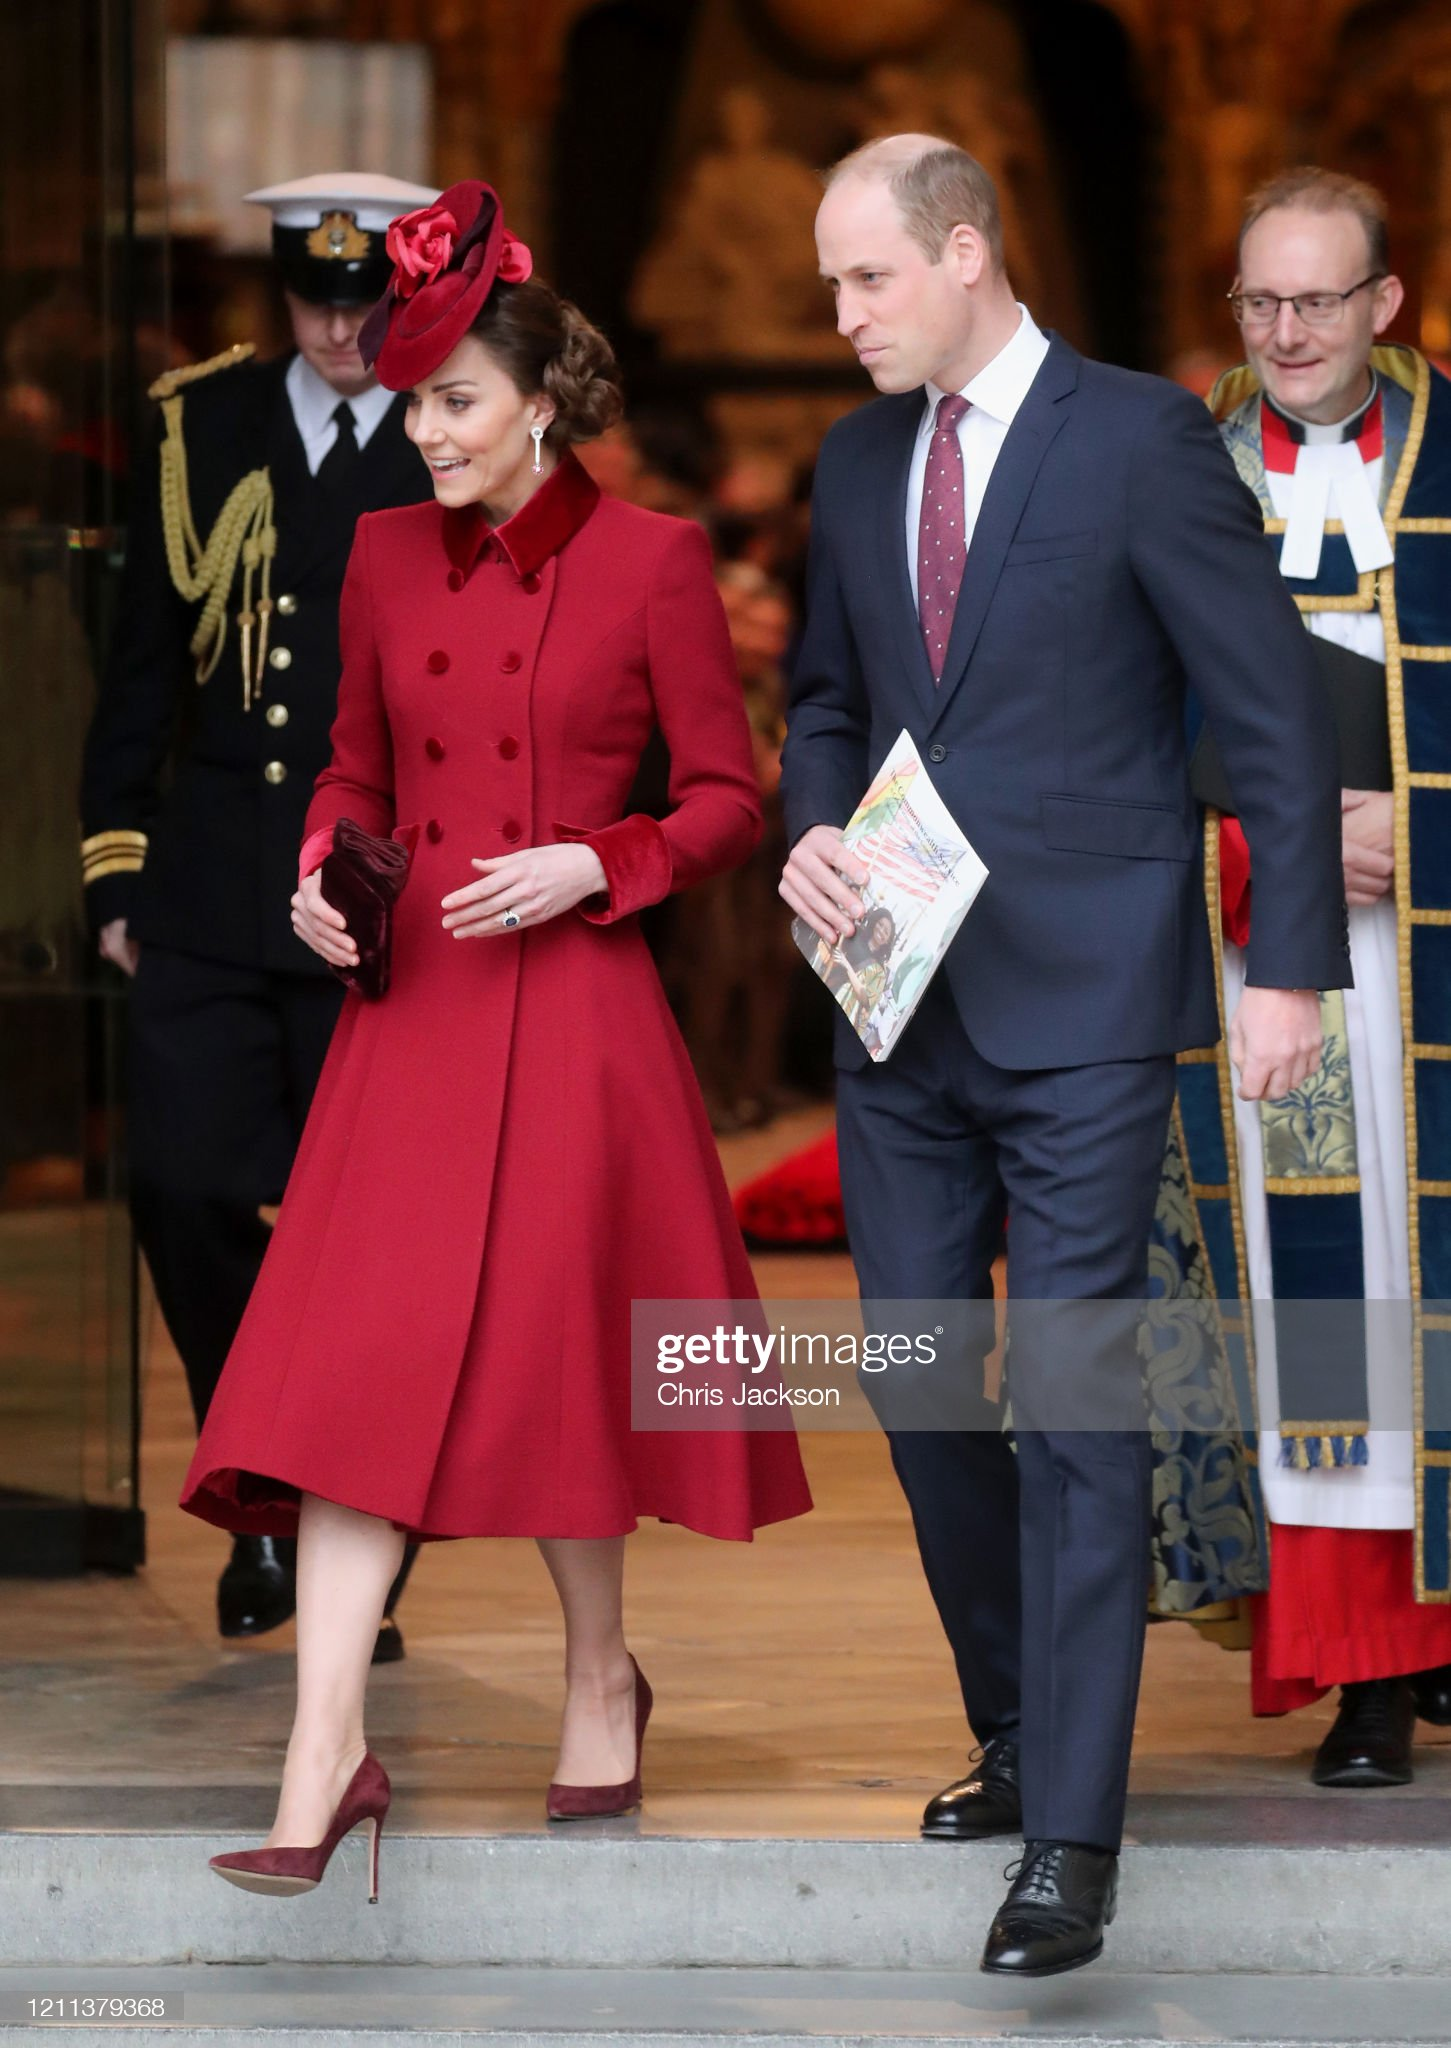 https://media.gettyimages.com/photos/catherine-duchess-of-cambridge-and-prince-william-duke-of-cambridge-picture-id1211379368?s=2048x2048